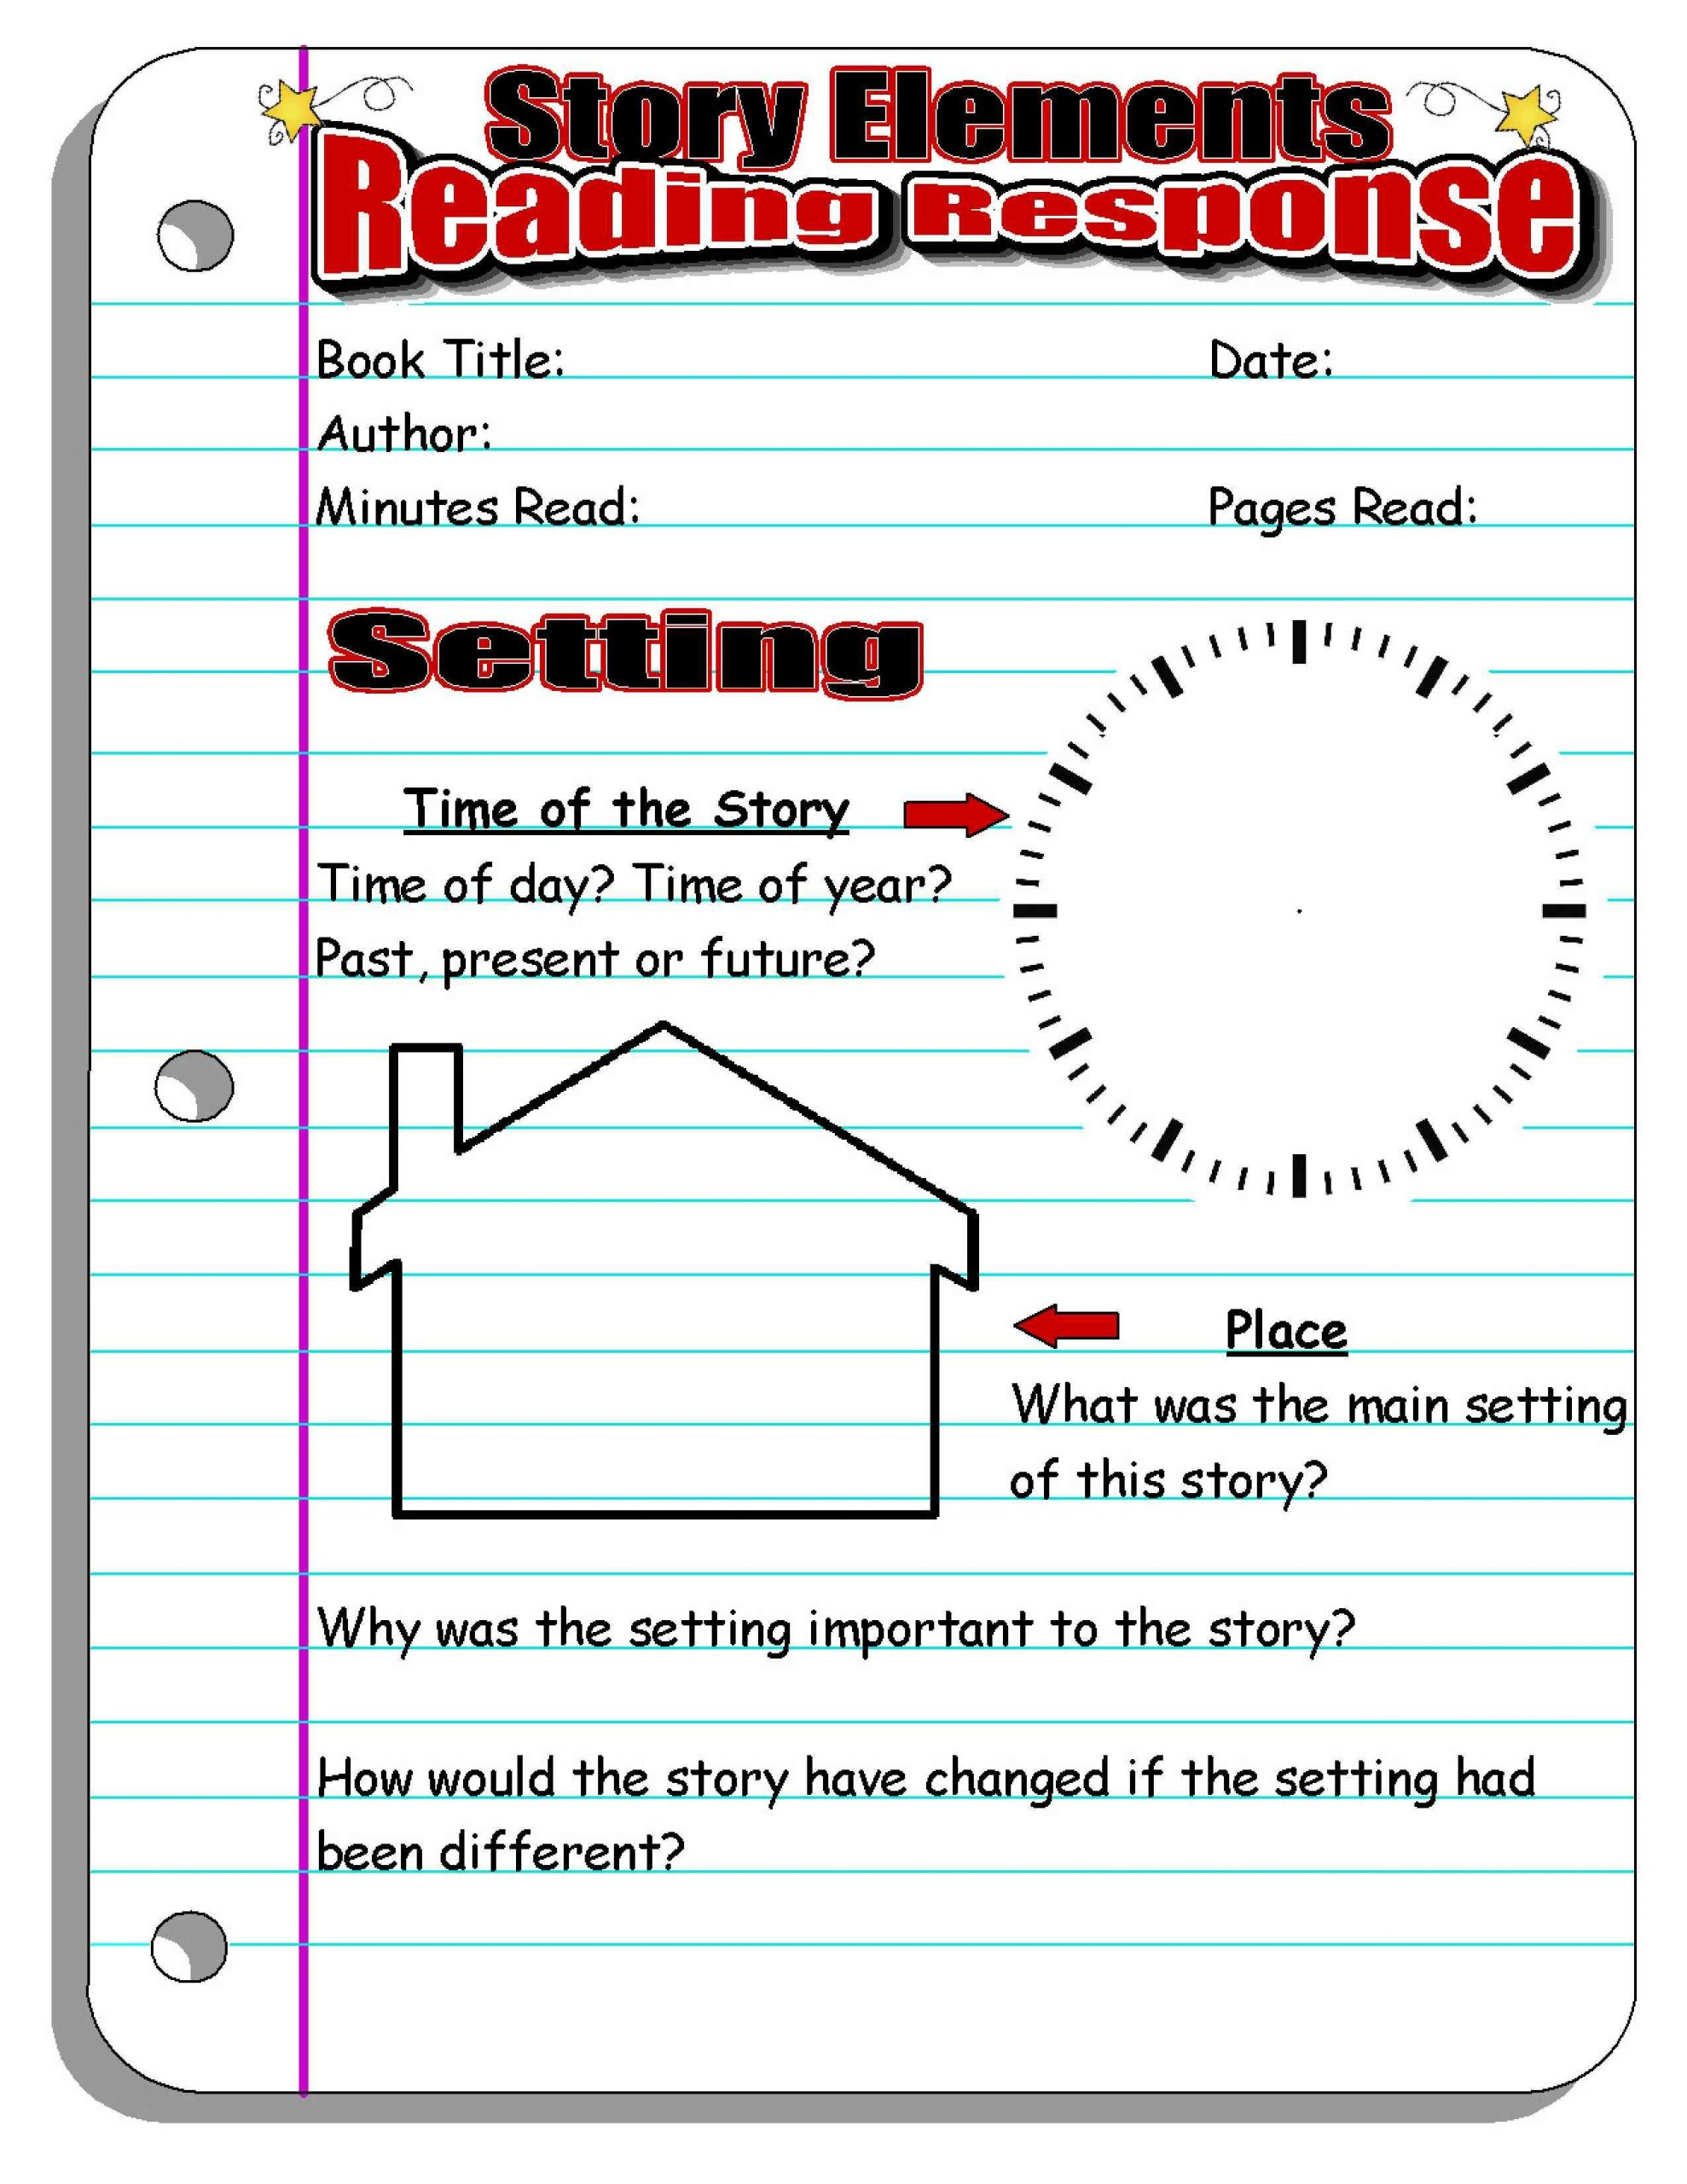 Story Elements Worksheet 5th Grade Reading Response forms and Graphic organizers